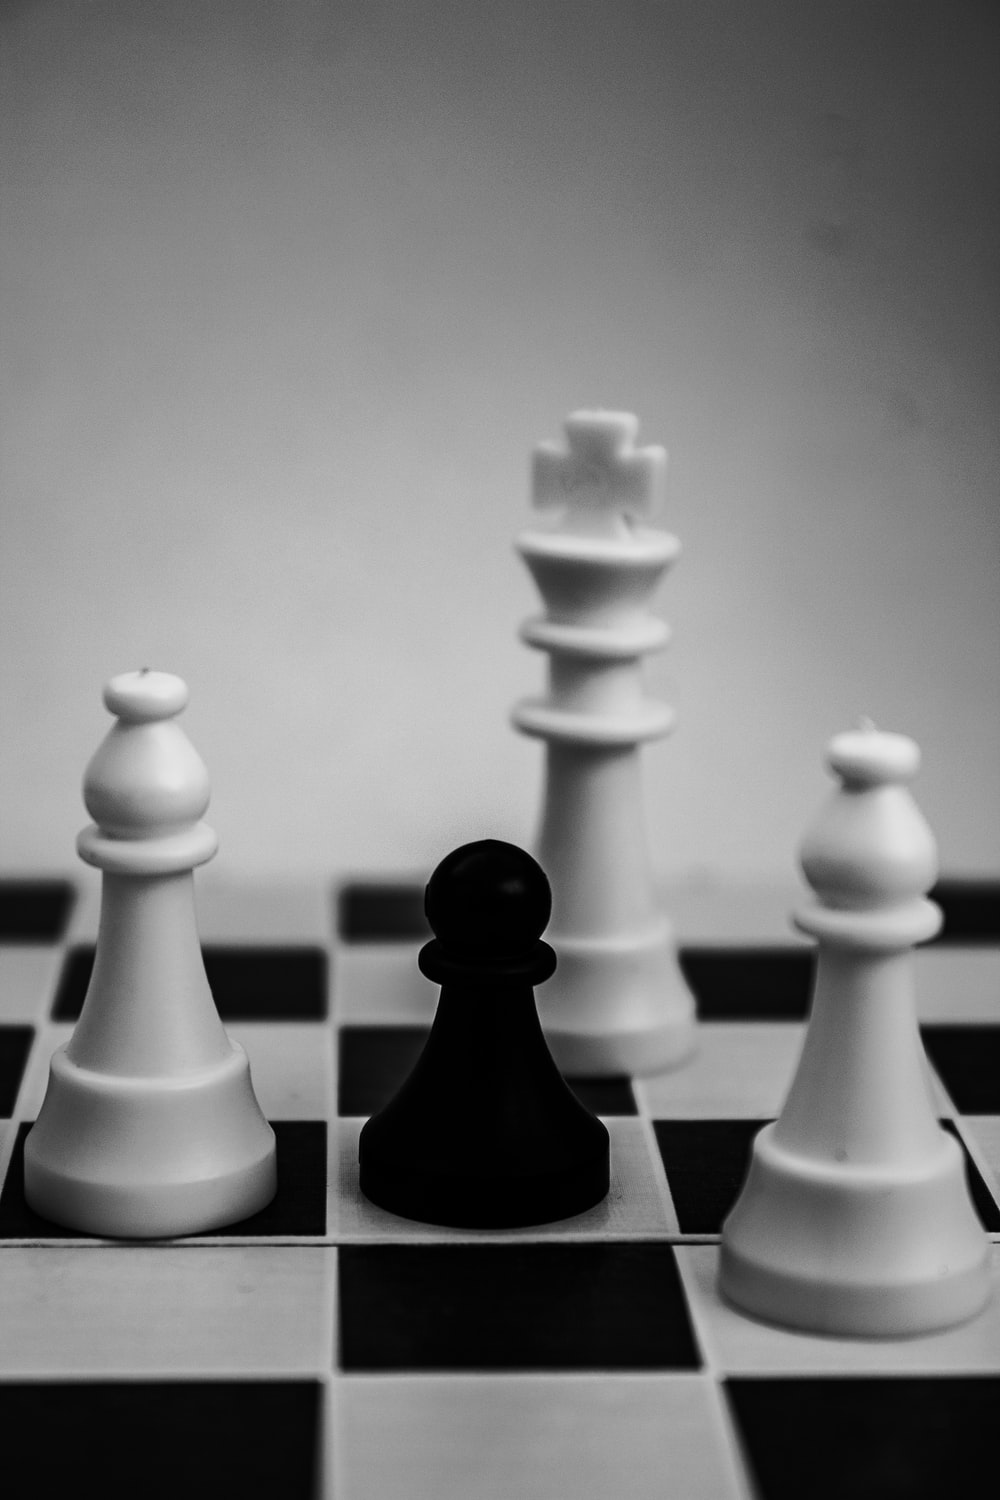 grayscale photo of king, pawn, and bishop chess pieces